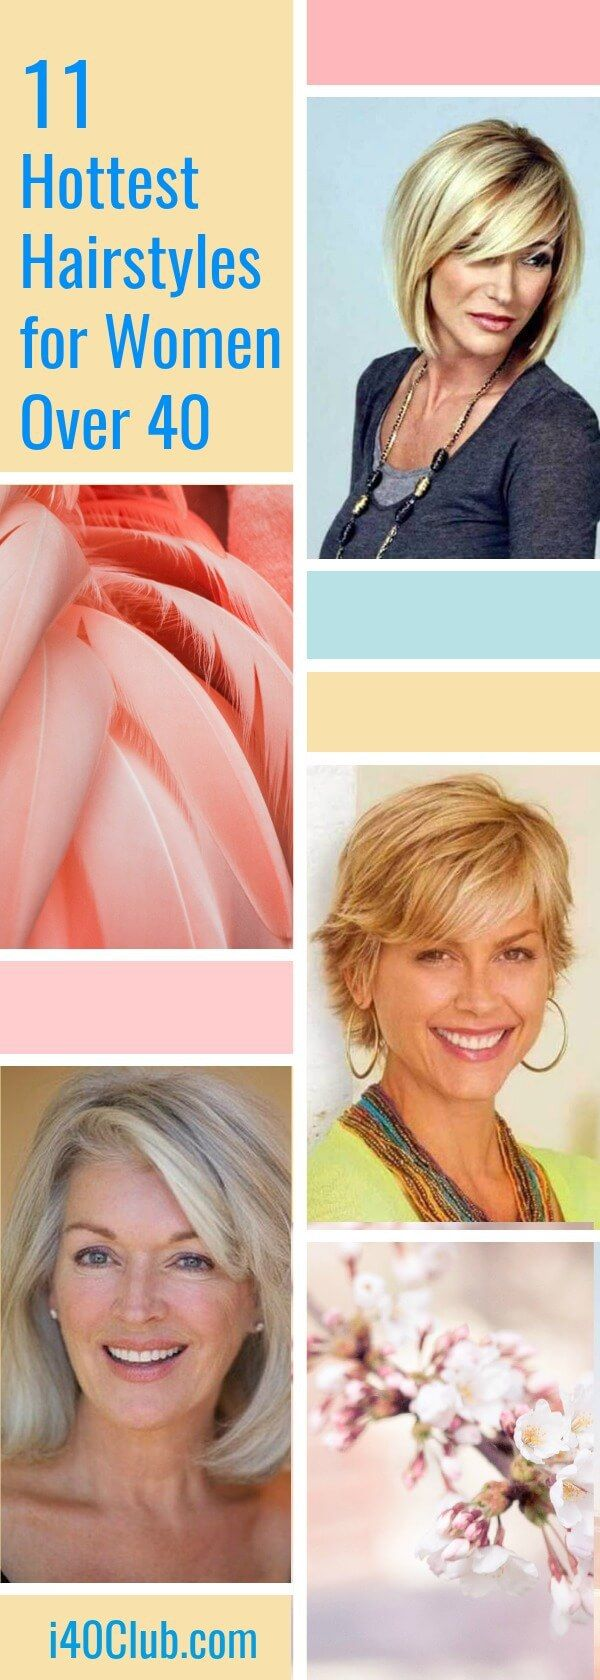 hottest hairstyles for women over cool hair colors and cut